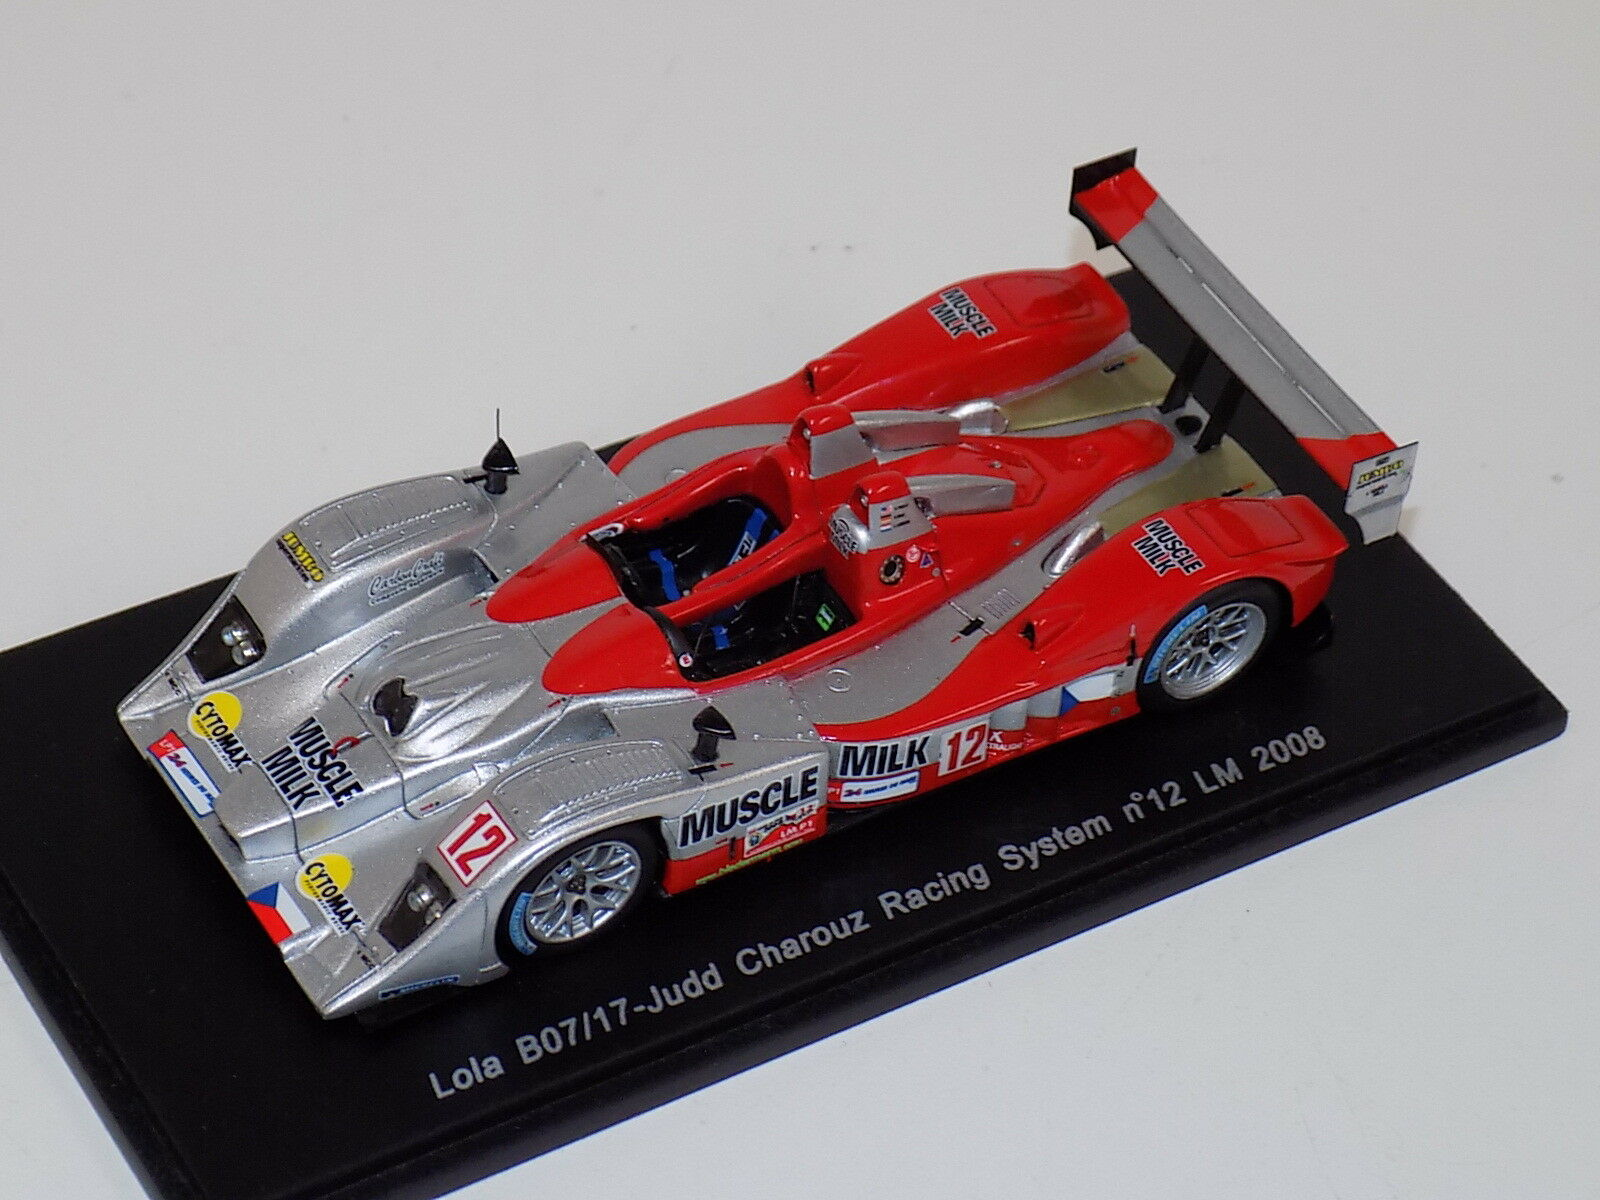 1 43 Spark Lola B07 17 Judd   Coche  12  24 Hours of LeMans  2008  S1429